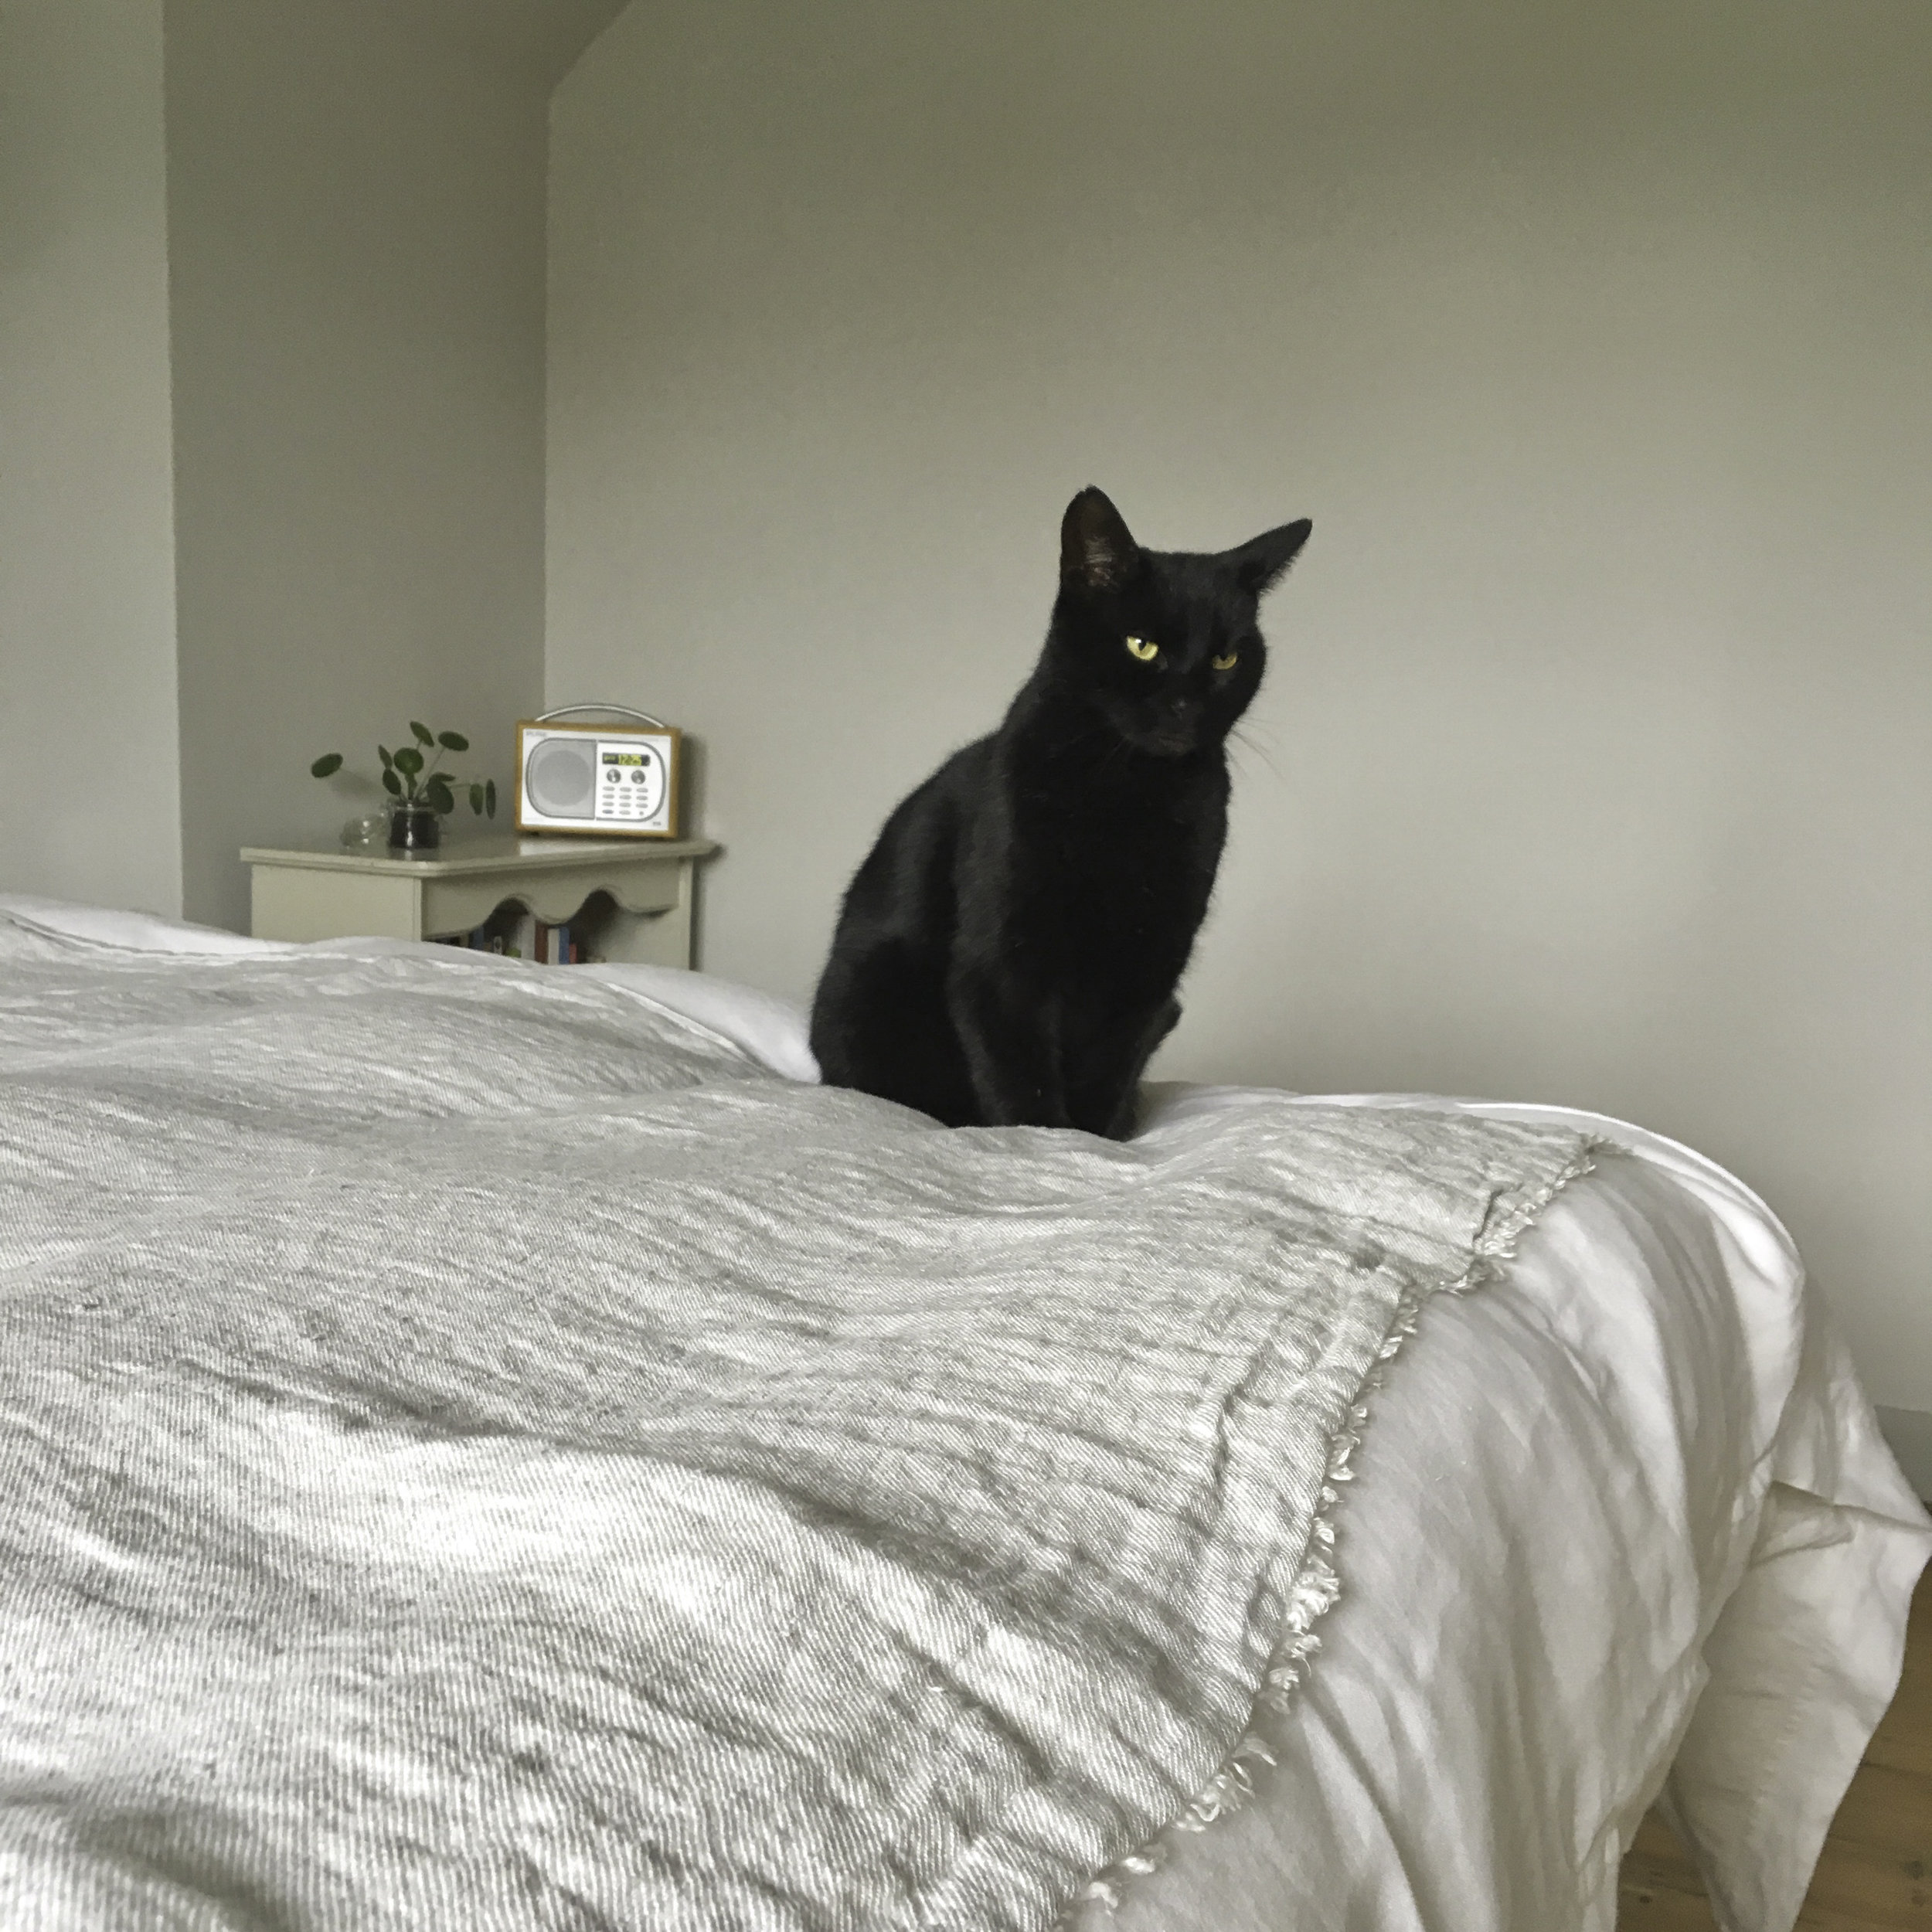 Don't let the cat on it if your cat is black and your linen is white. Muddy paws and black hairs!